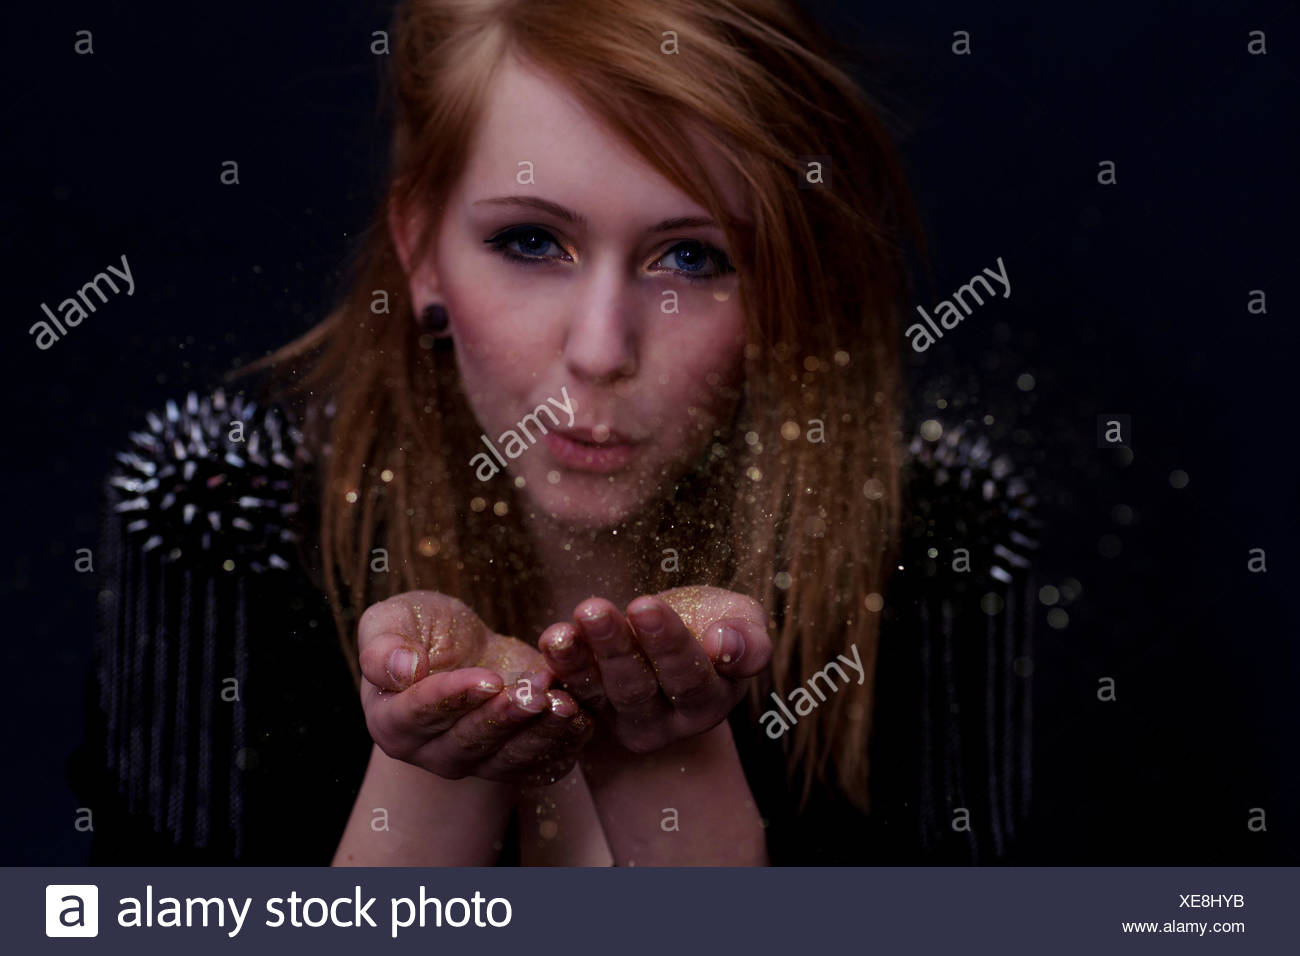 stylish dressed woman puffs glitter in the camera - Stock Image